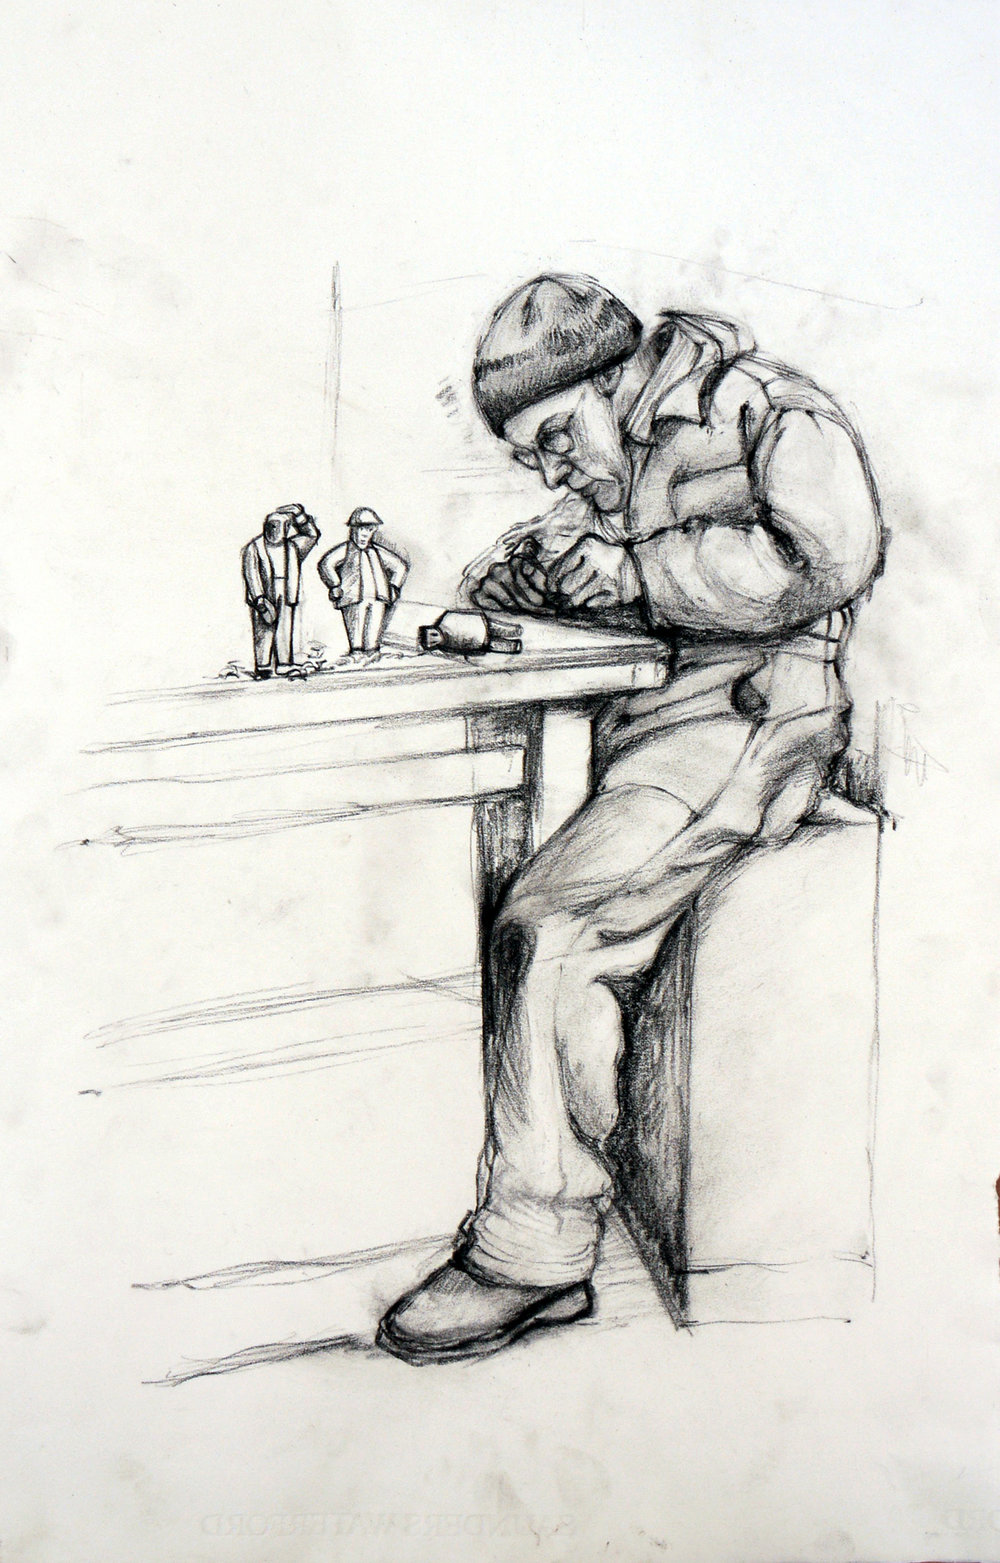 Tim at work_56x37_CharcoalonPaper_jpg.jpg